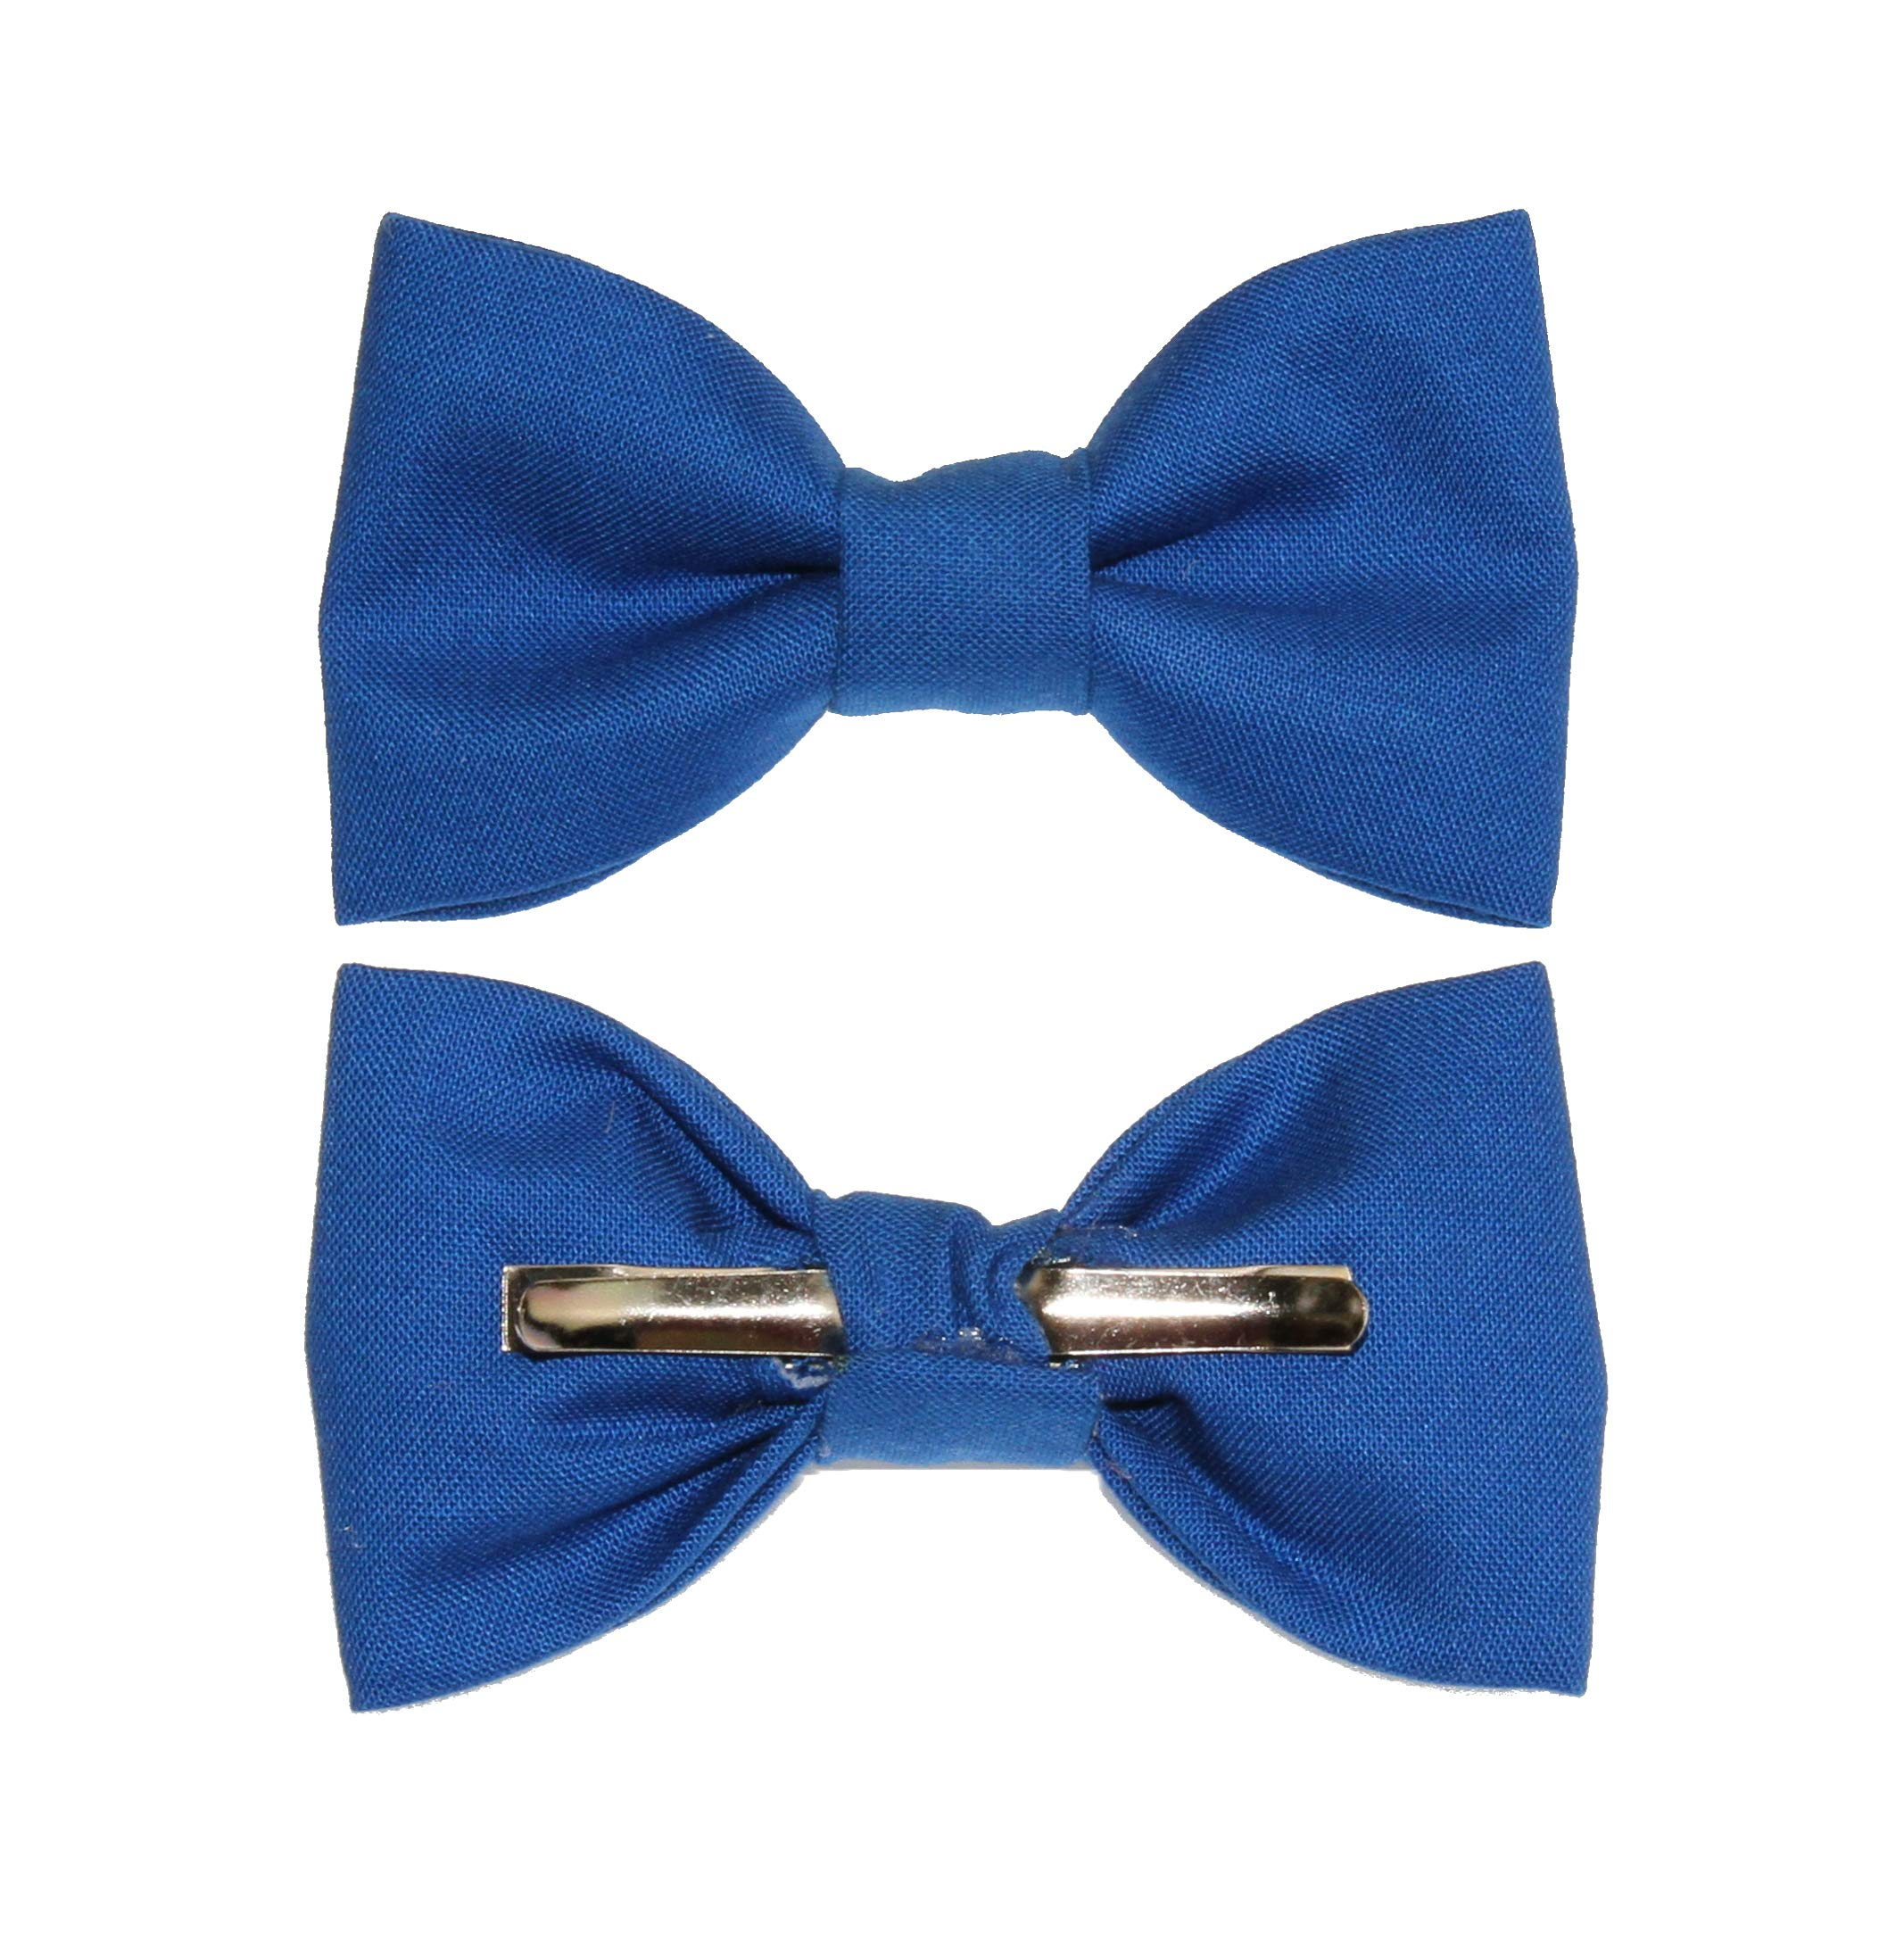 Toddler Boy 4T 5T Royal Blue Clip On Cotton Bow Tie Bowtie - Made in USA